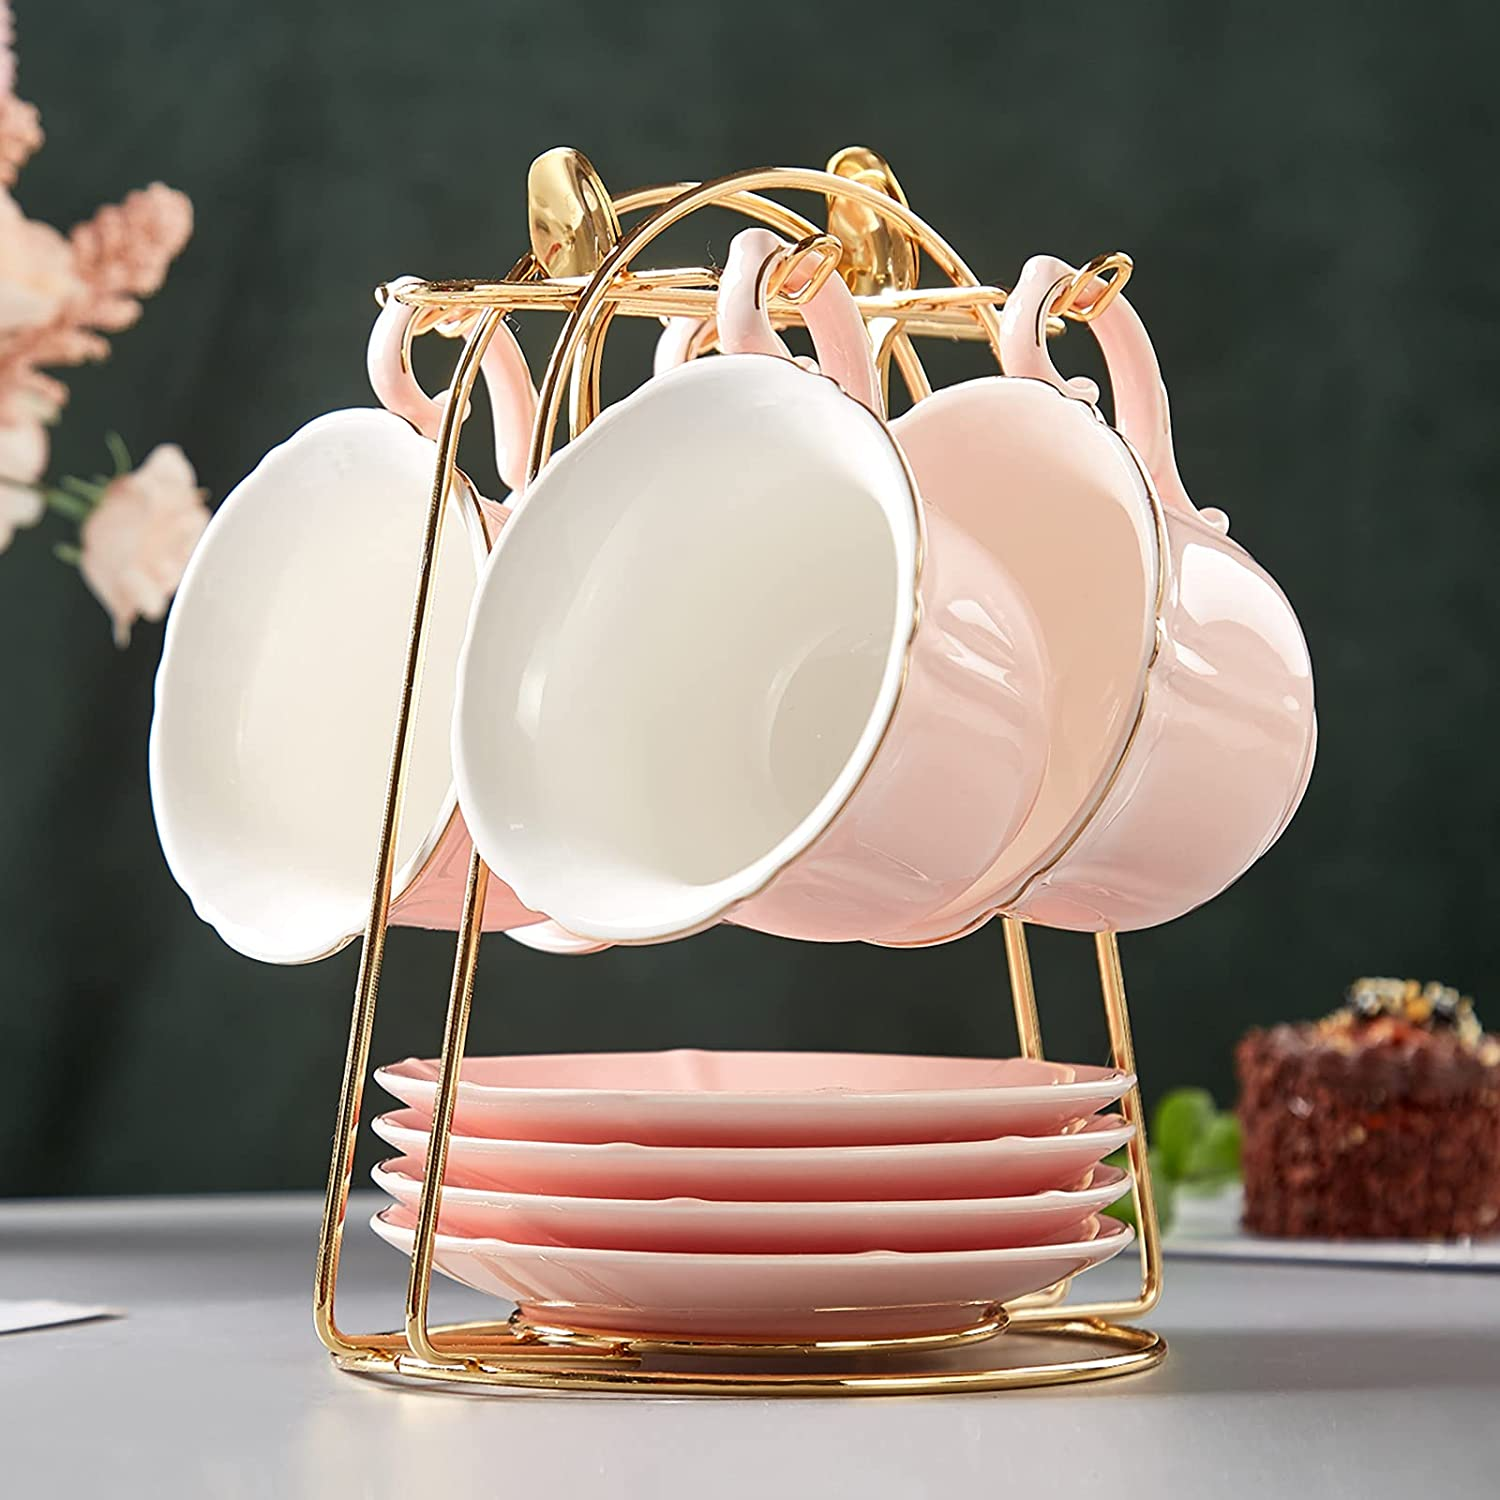 DUJUST Tea Super popular specialty store Cups and Saucers Set of Candy Cup 8 Latest item Pink 4 OZ